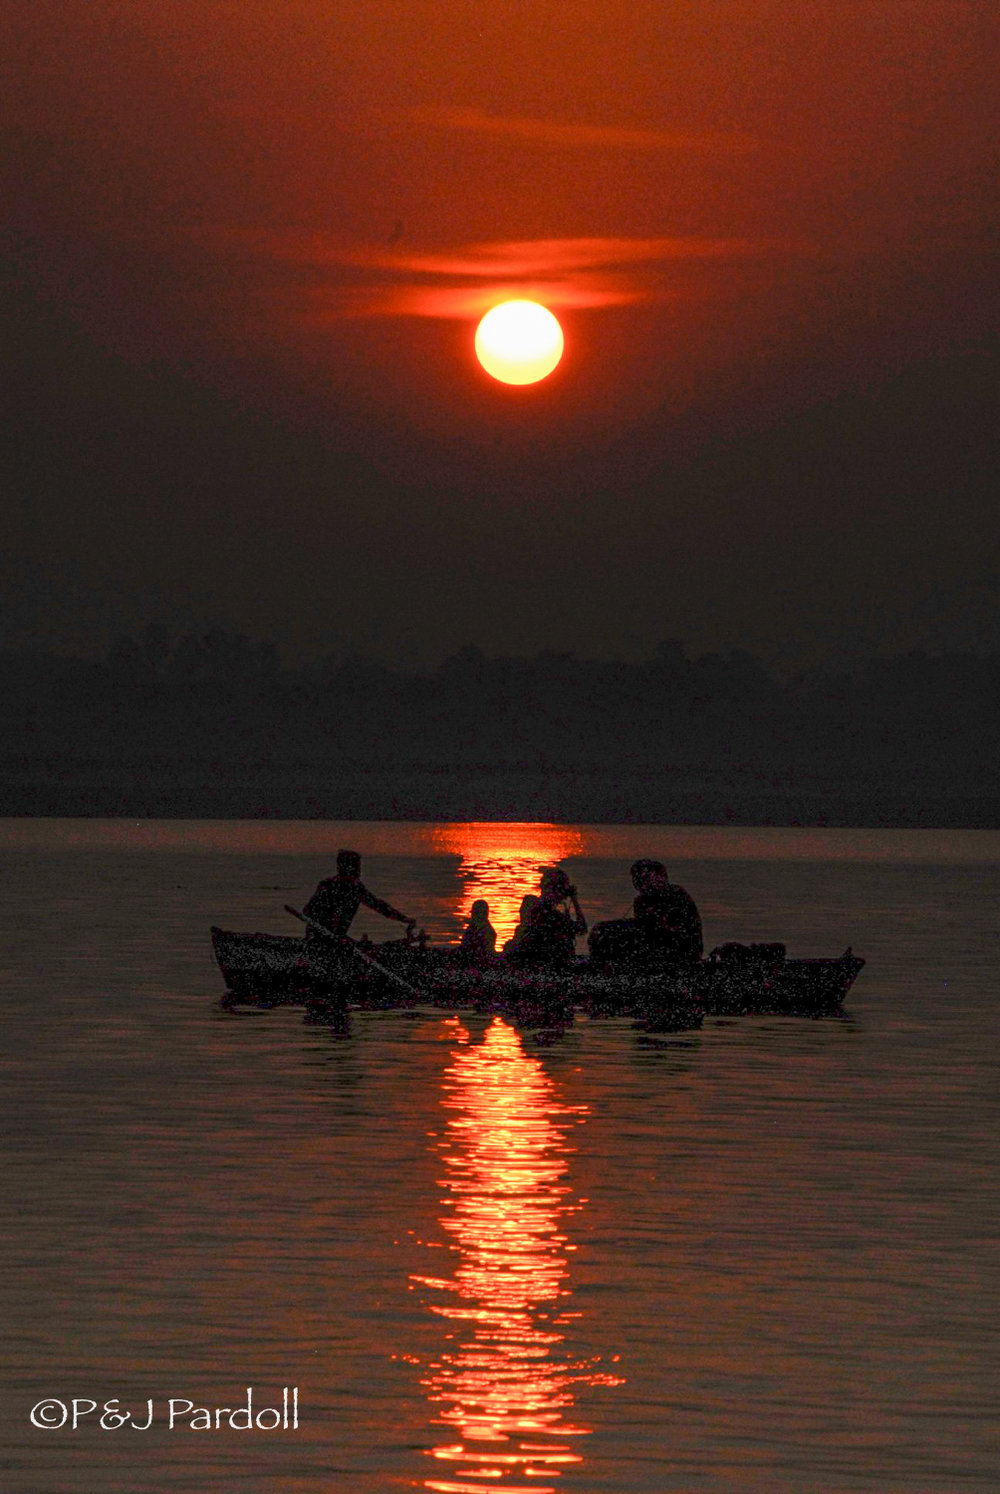 Sunset on Ganges River in Varanasi, India